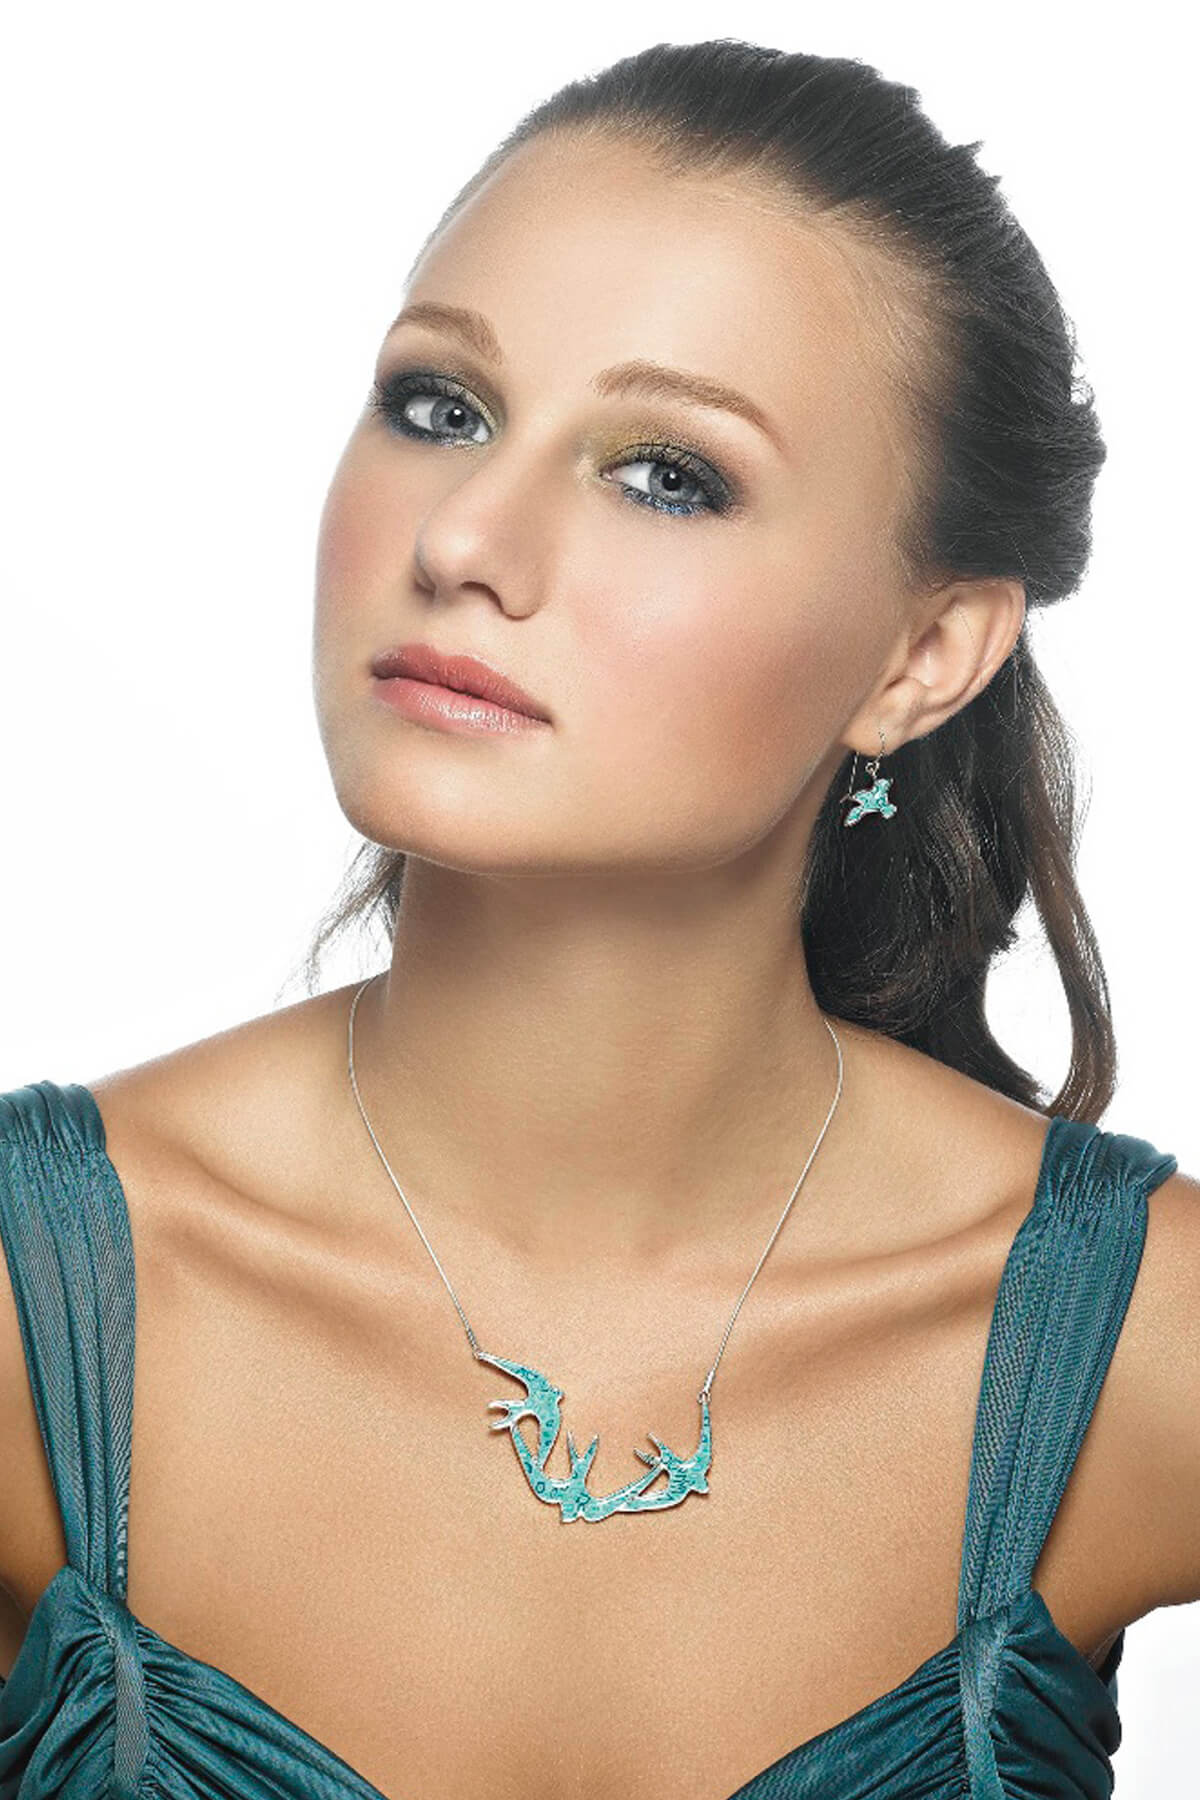 Handmade Silver Swallows Necklace and Earrings  – Turquoise Pattern